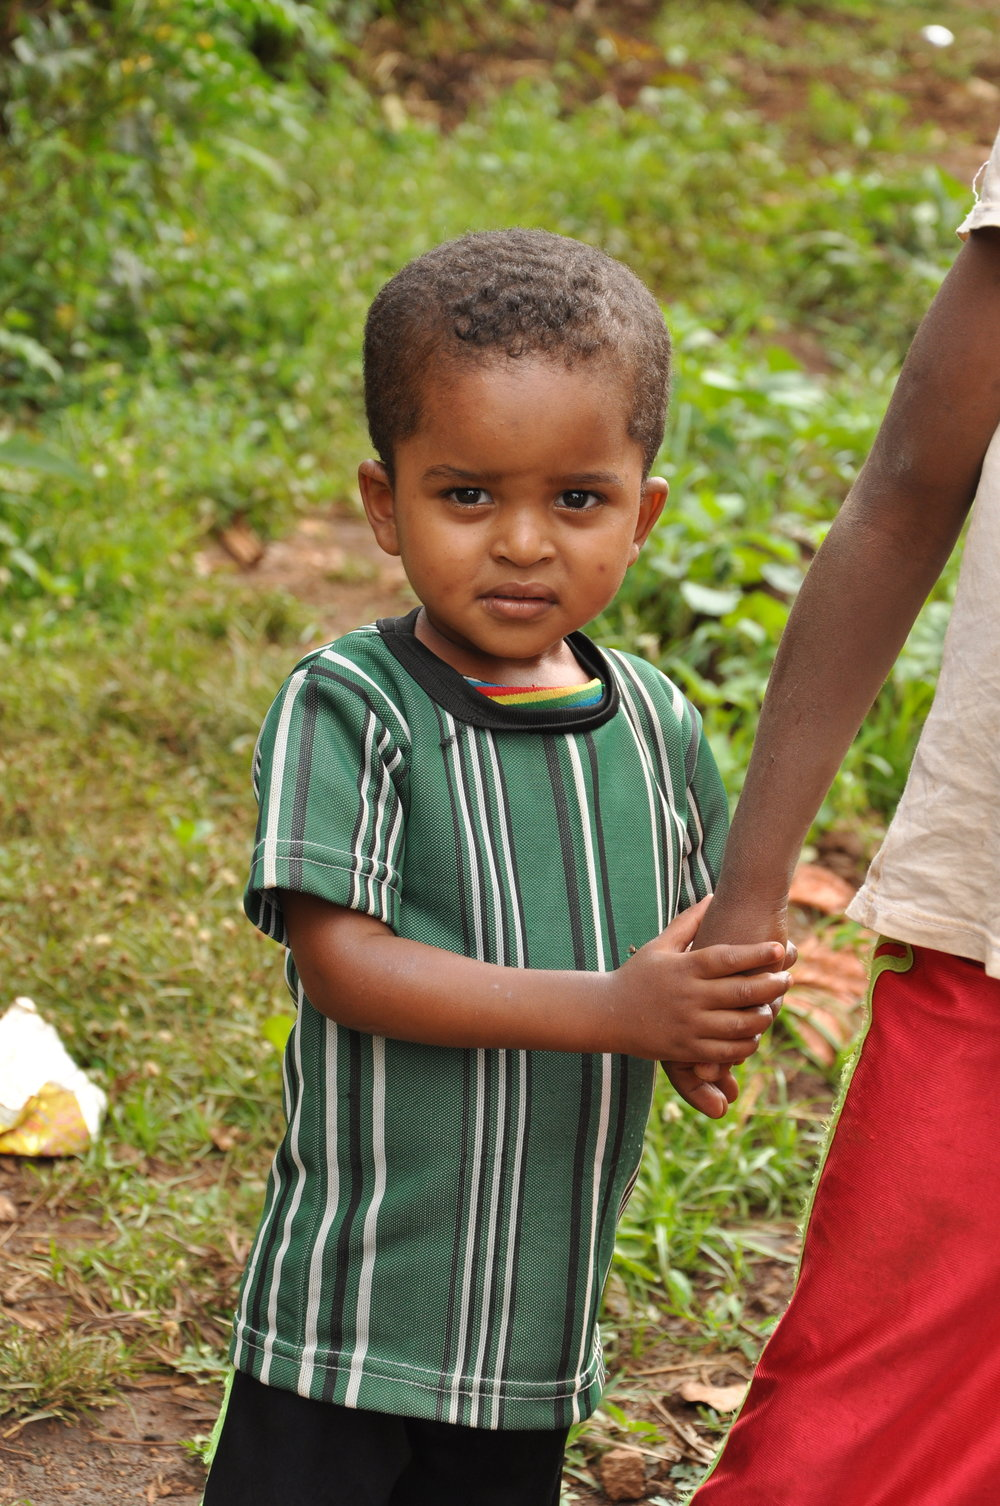 Kelmu   Kelmu came to us as a tiny baby from another orphanage that shut down due to lack of funding. That was almost two years ago, and he is now a giggly, energetic toddler who just loves everyone. Kelmu is generously sponsored by Eric and Ursula Navet.